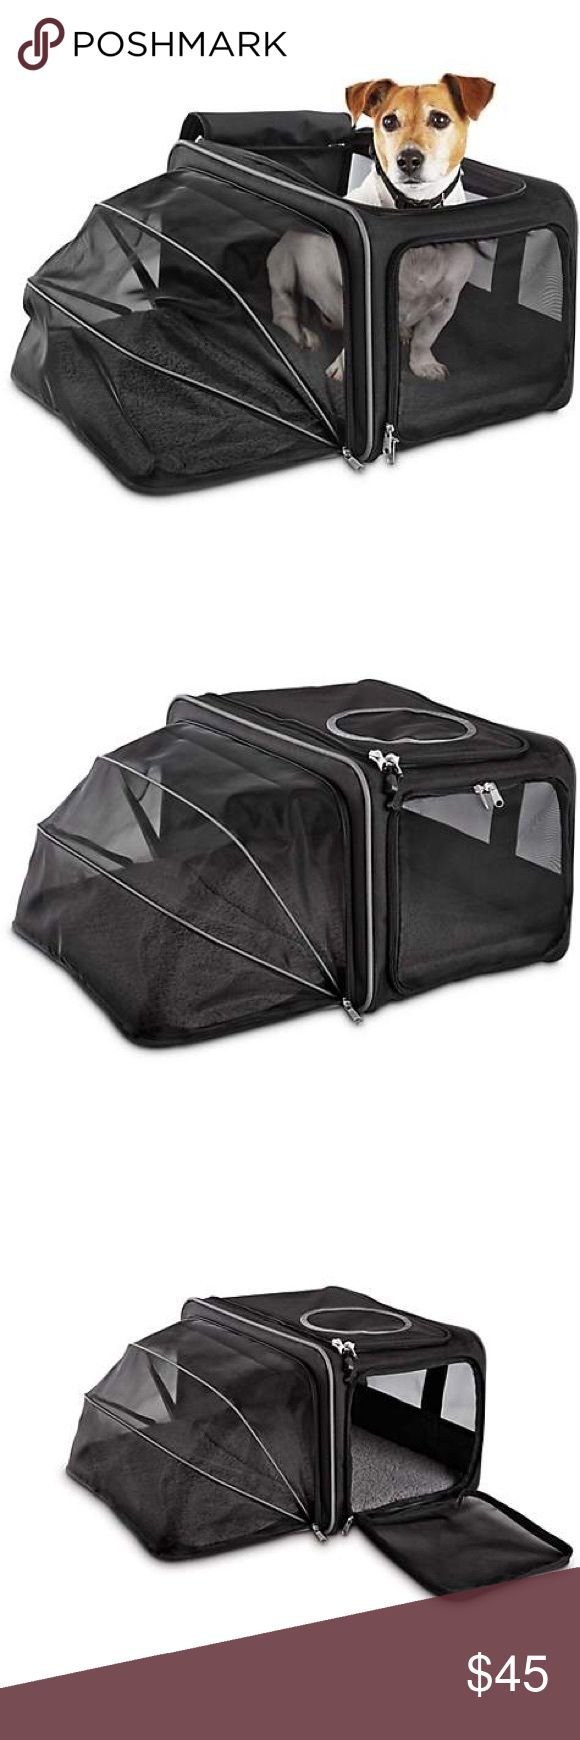 Good2Go Expandable Pet Travel Carrier, Black Good2Go Expandable Pet Travel Carrier, Black, shoulder strap and handles, used once, pictures provided of condition, gives your dog or cat room to stretch out thanks to a zip-out window. with inner fleece pad,  Side and top entry points, carry handle, and removable shoulder strap.  All bundles of 2 or more receive 15% off. Closet full of new, used and vintage Vans, Skate and surf companies, jewelry, phone cases, shoes, Men's, women's, plus sized